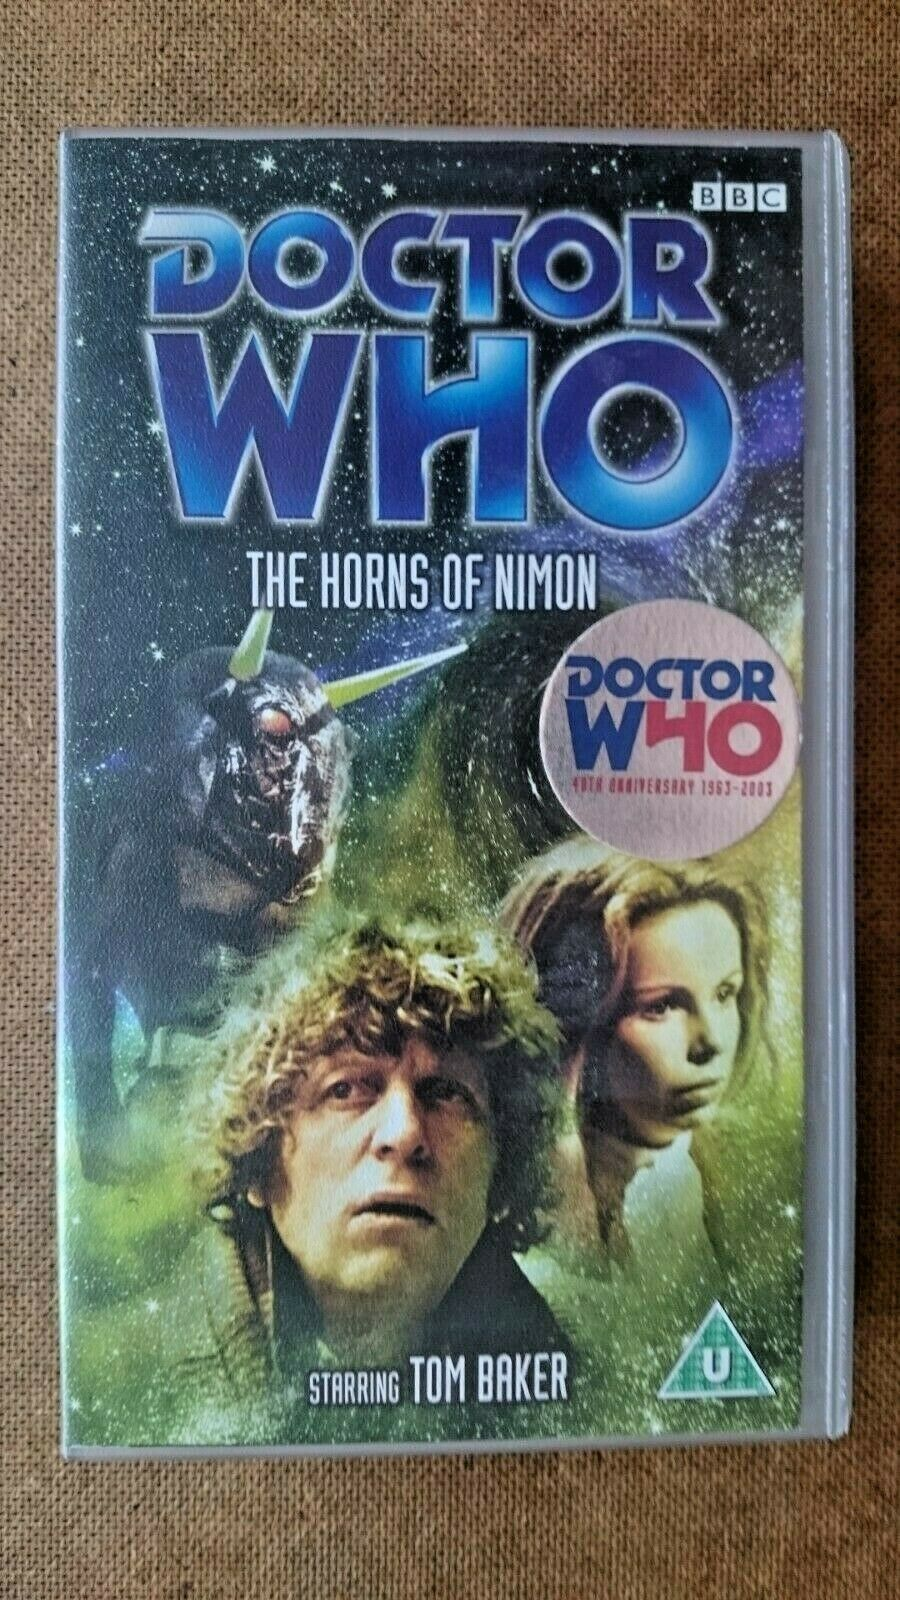 Doctor Who - Horns Of Nimon (VHS, 2003) - Tom Baker